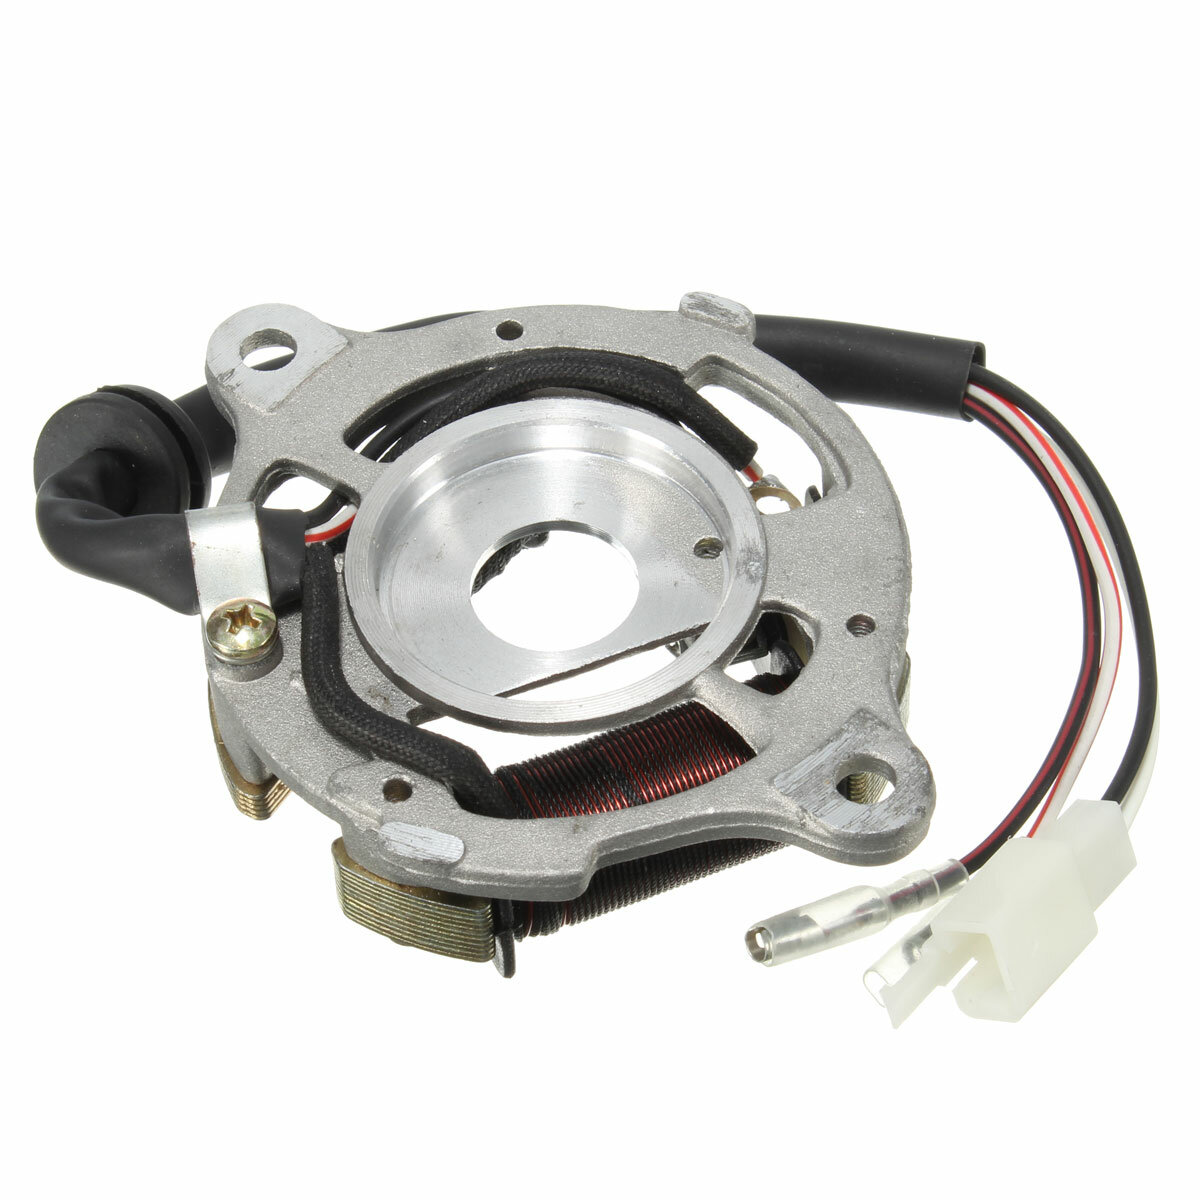 hight resolution of stator ignition magneto coil assembly for yamaha pw50 pw 50 qt50 cod